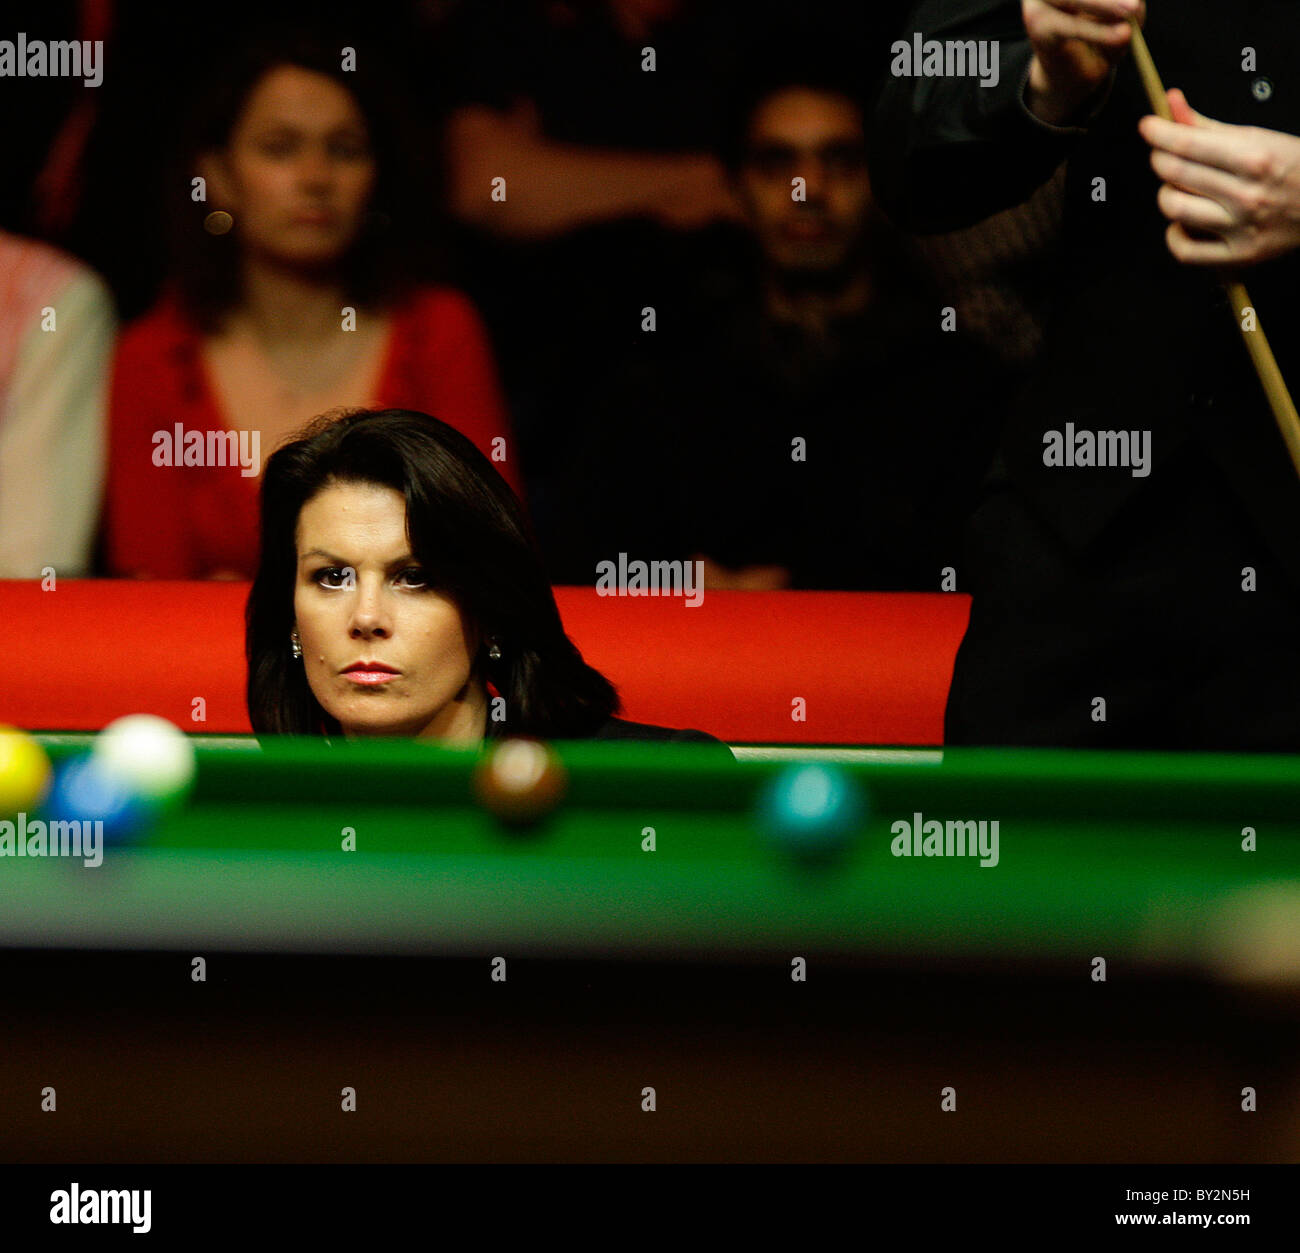 Michaela Tabb snooker at the Masters Snooker from Wembley Arena. - Stock Image